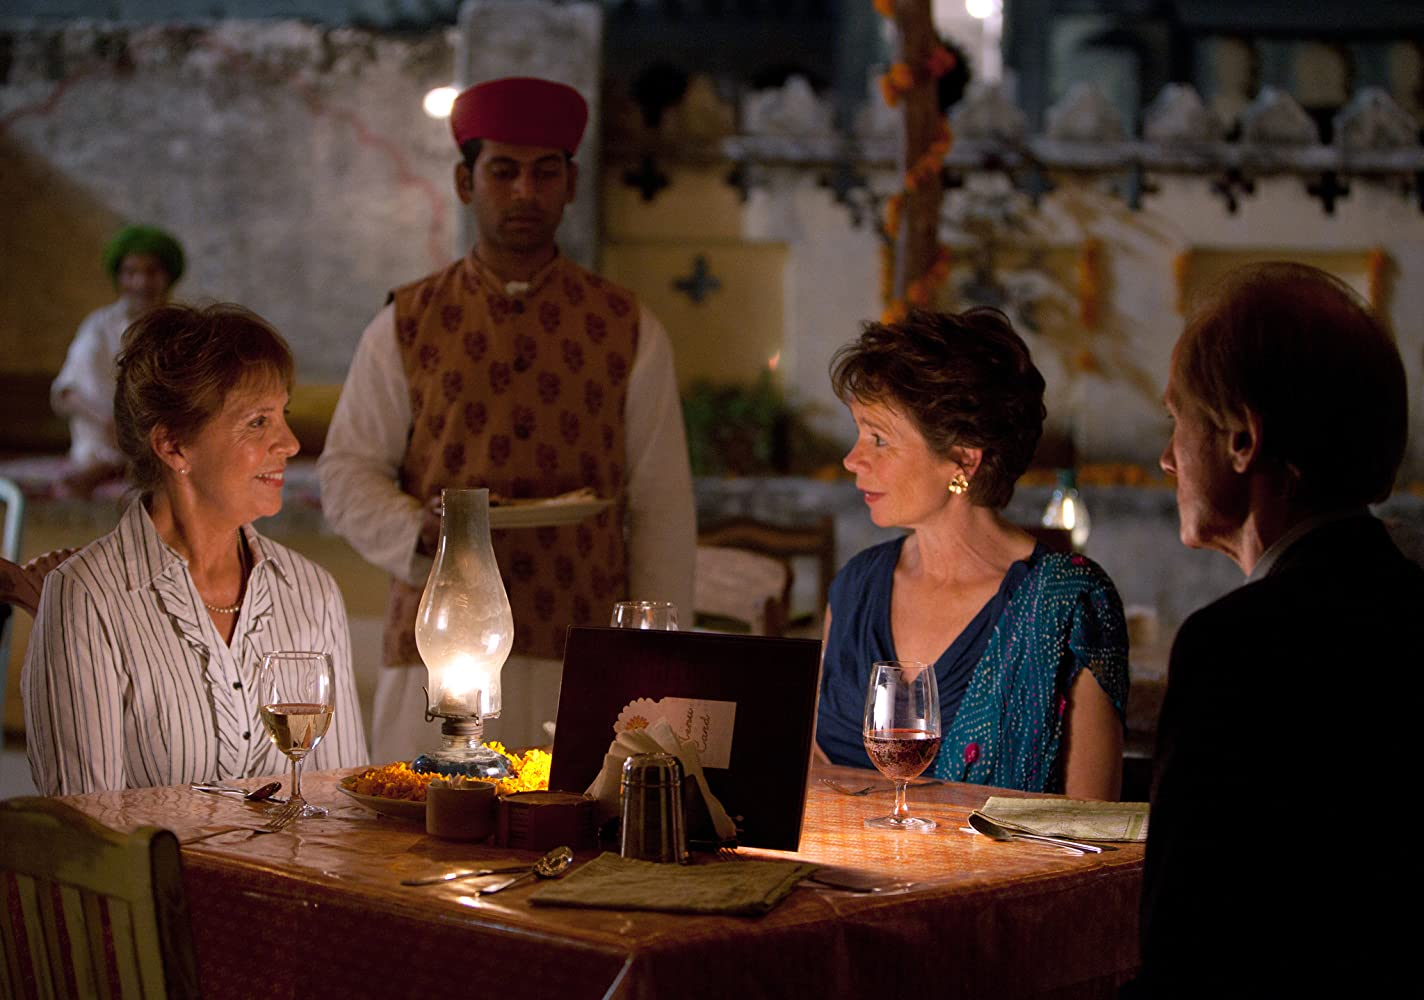 Celia Imrie, Bill Nighy, and Penelope Wilton in The Best Exotic Marigold Hotel (2011)